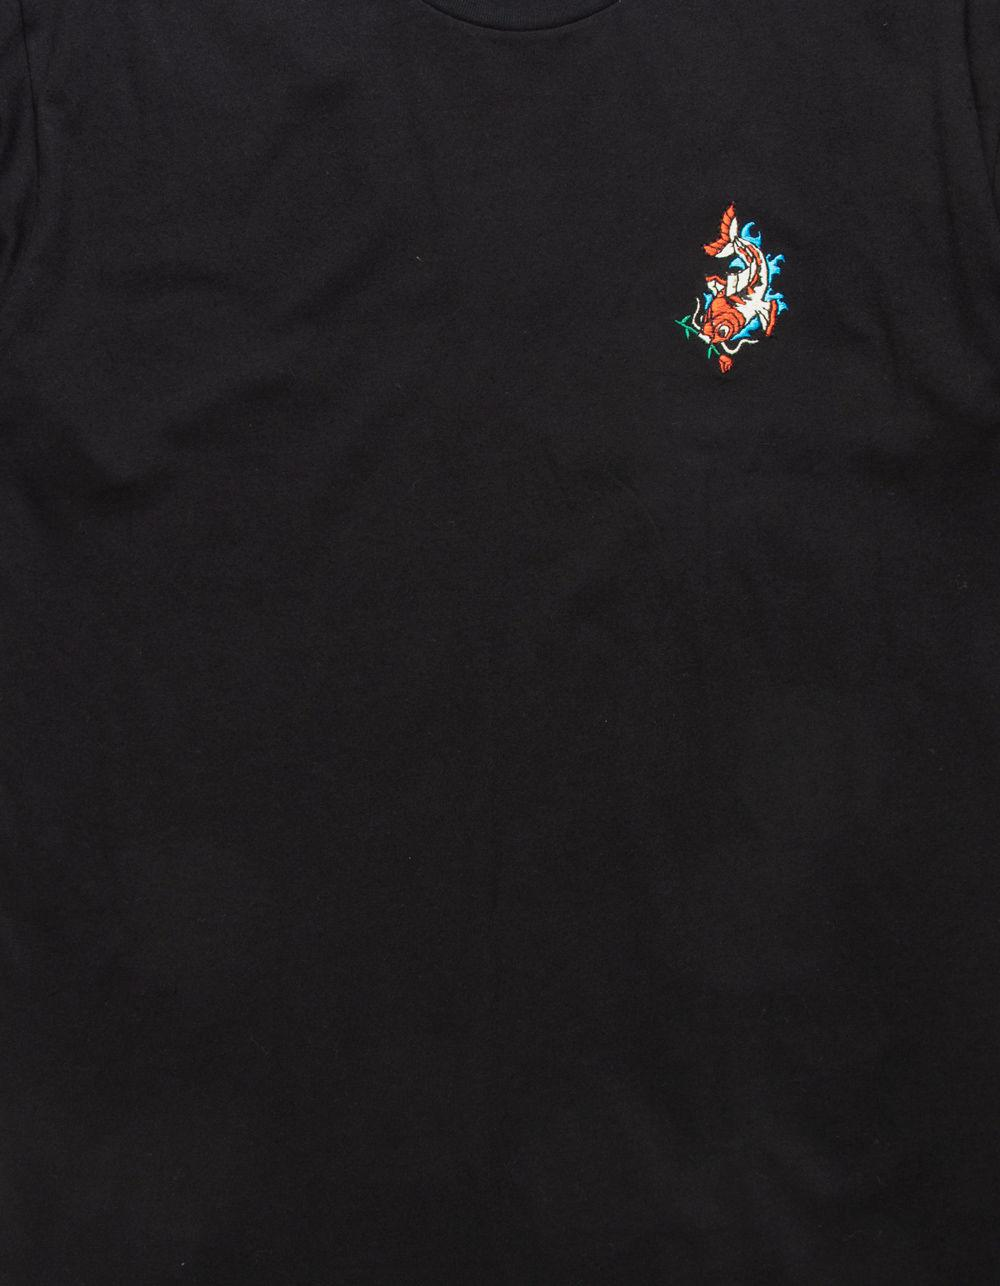 aa3f5f46 Lyst - Riot Society Koi Embroidery Black Mens T-shirt in Black for Men